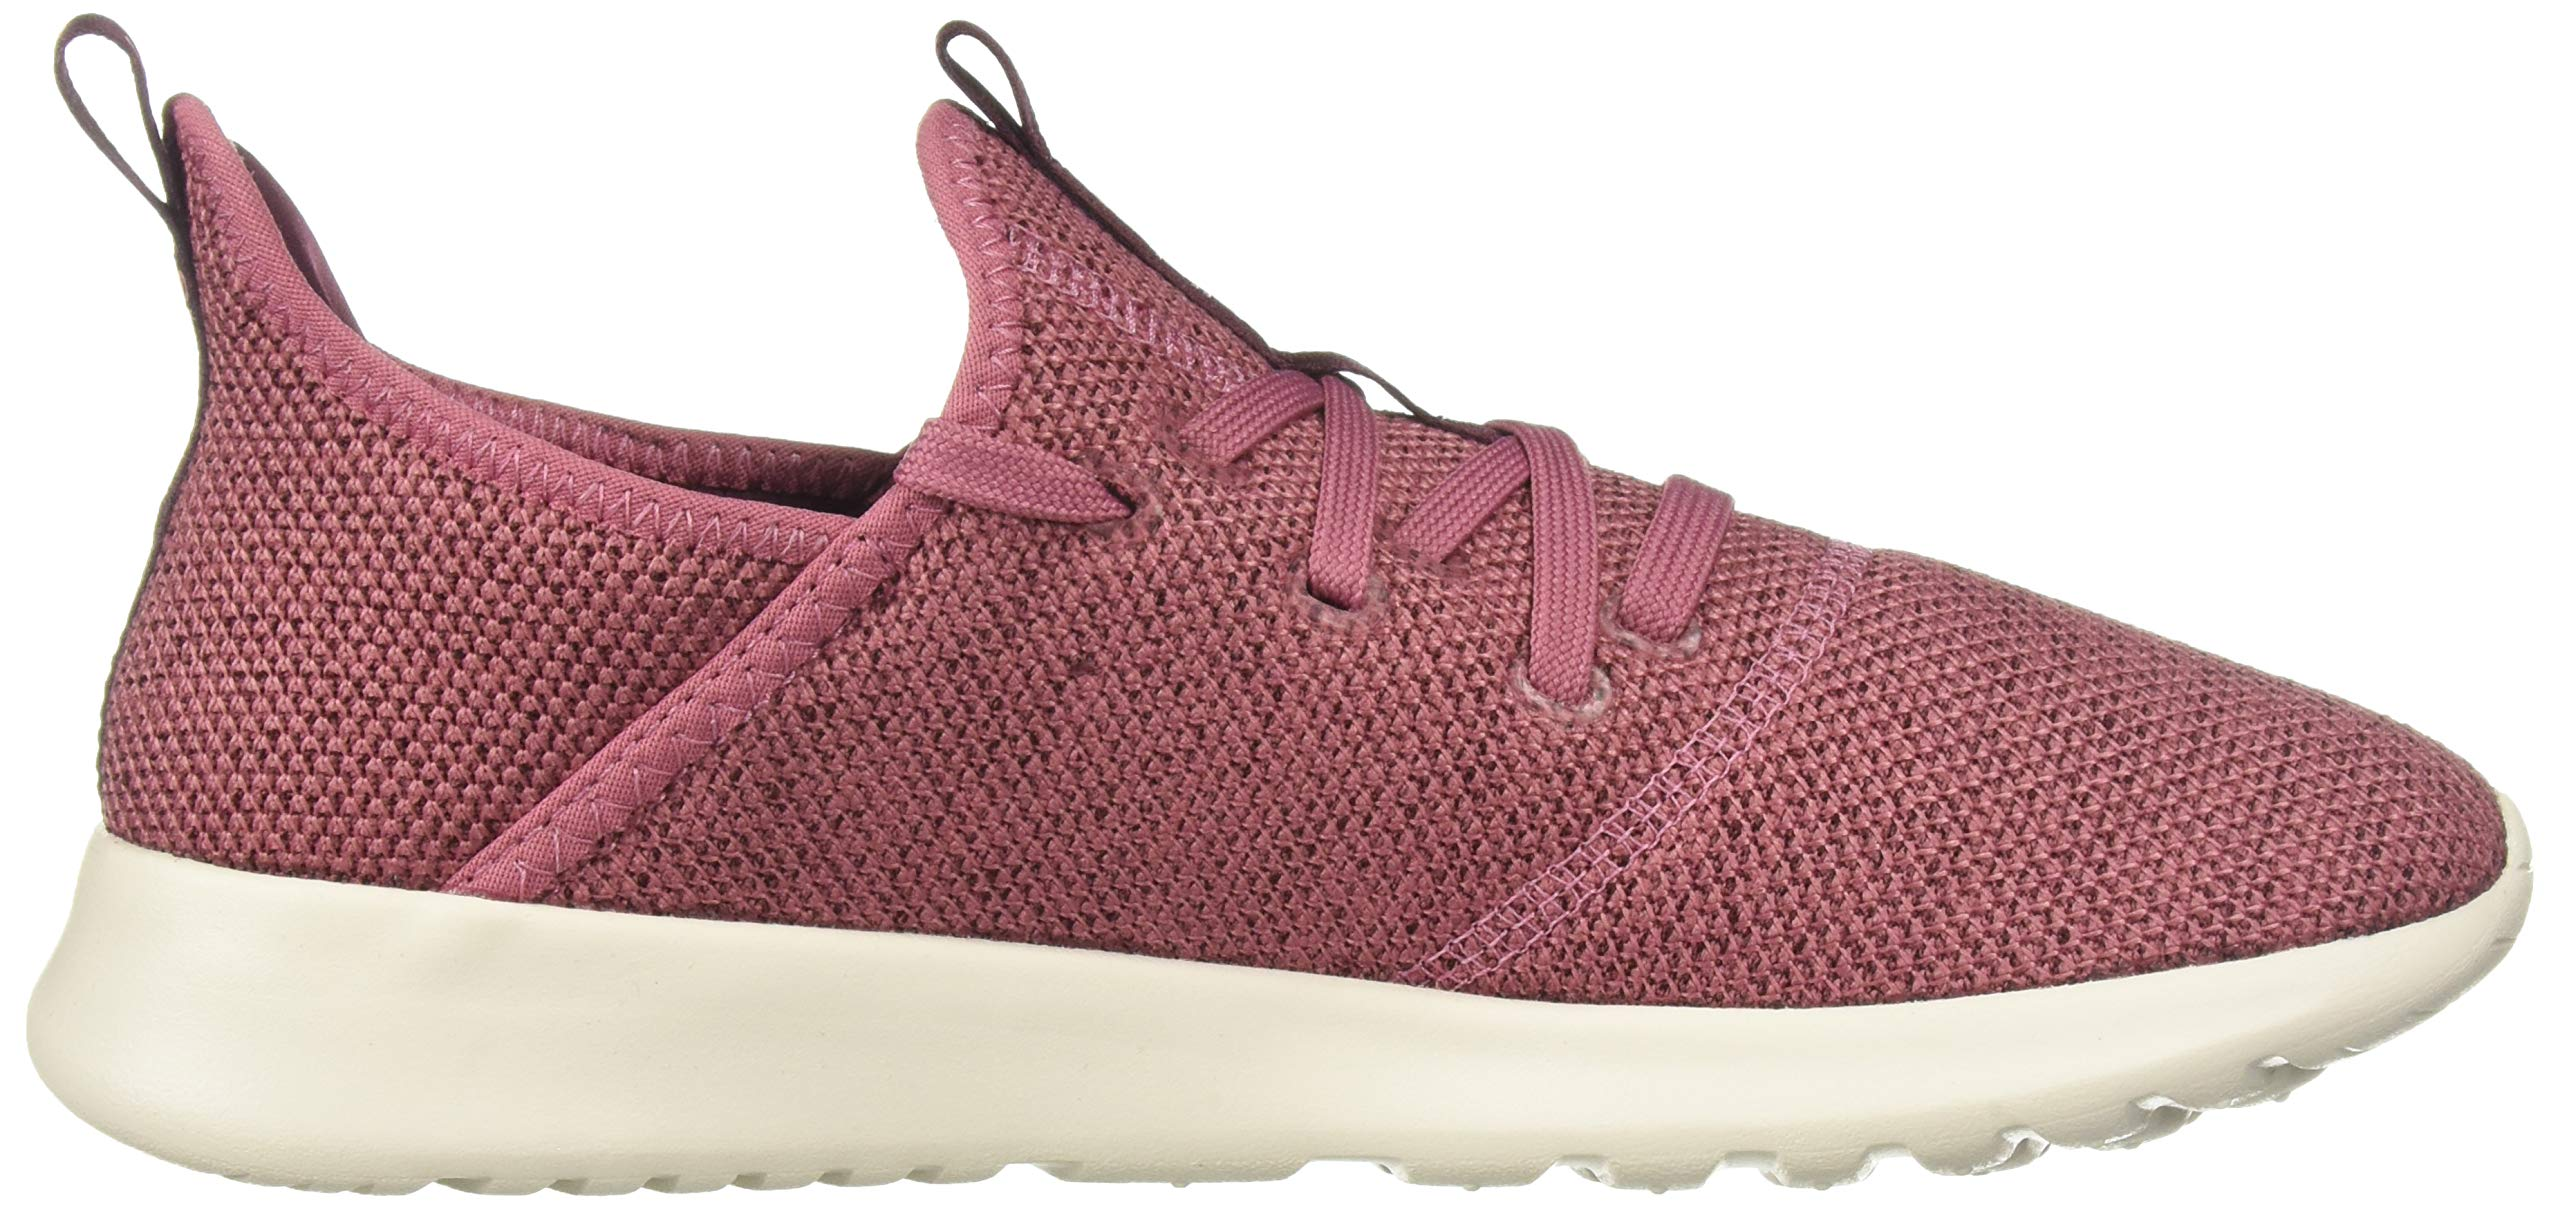 adidas Performance Women's Cloudfoam Pure Running Shoe, Maroon/Maroon/White, 5 M US by adidas (Image #7)